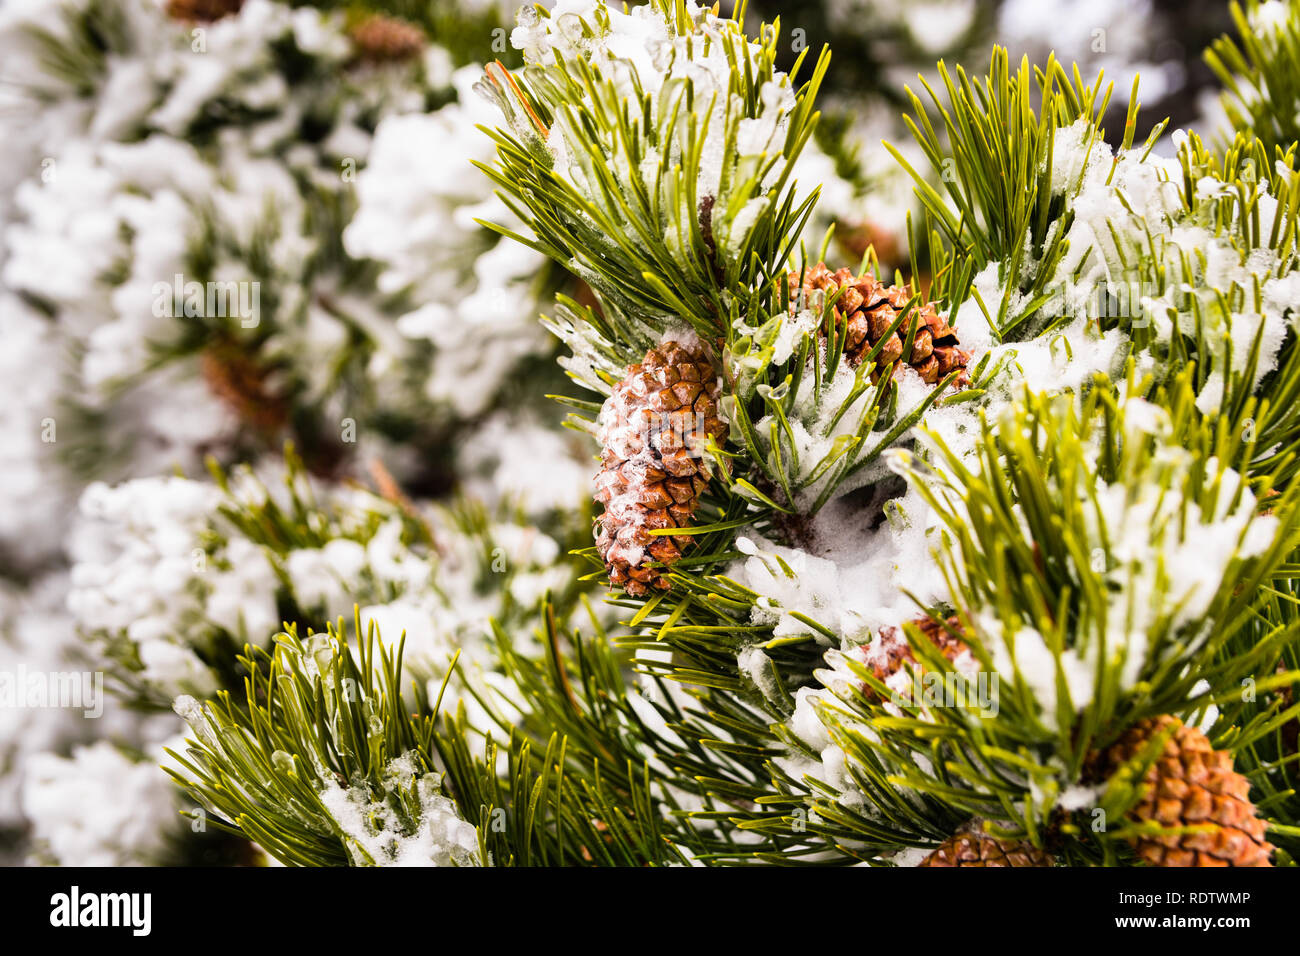 Close up of pine needles and cones covered in ice on a cold winter day, California Stock Photo